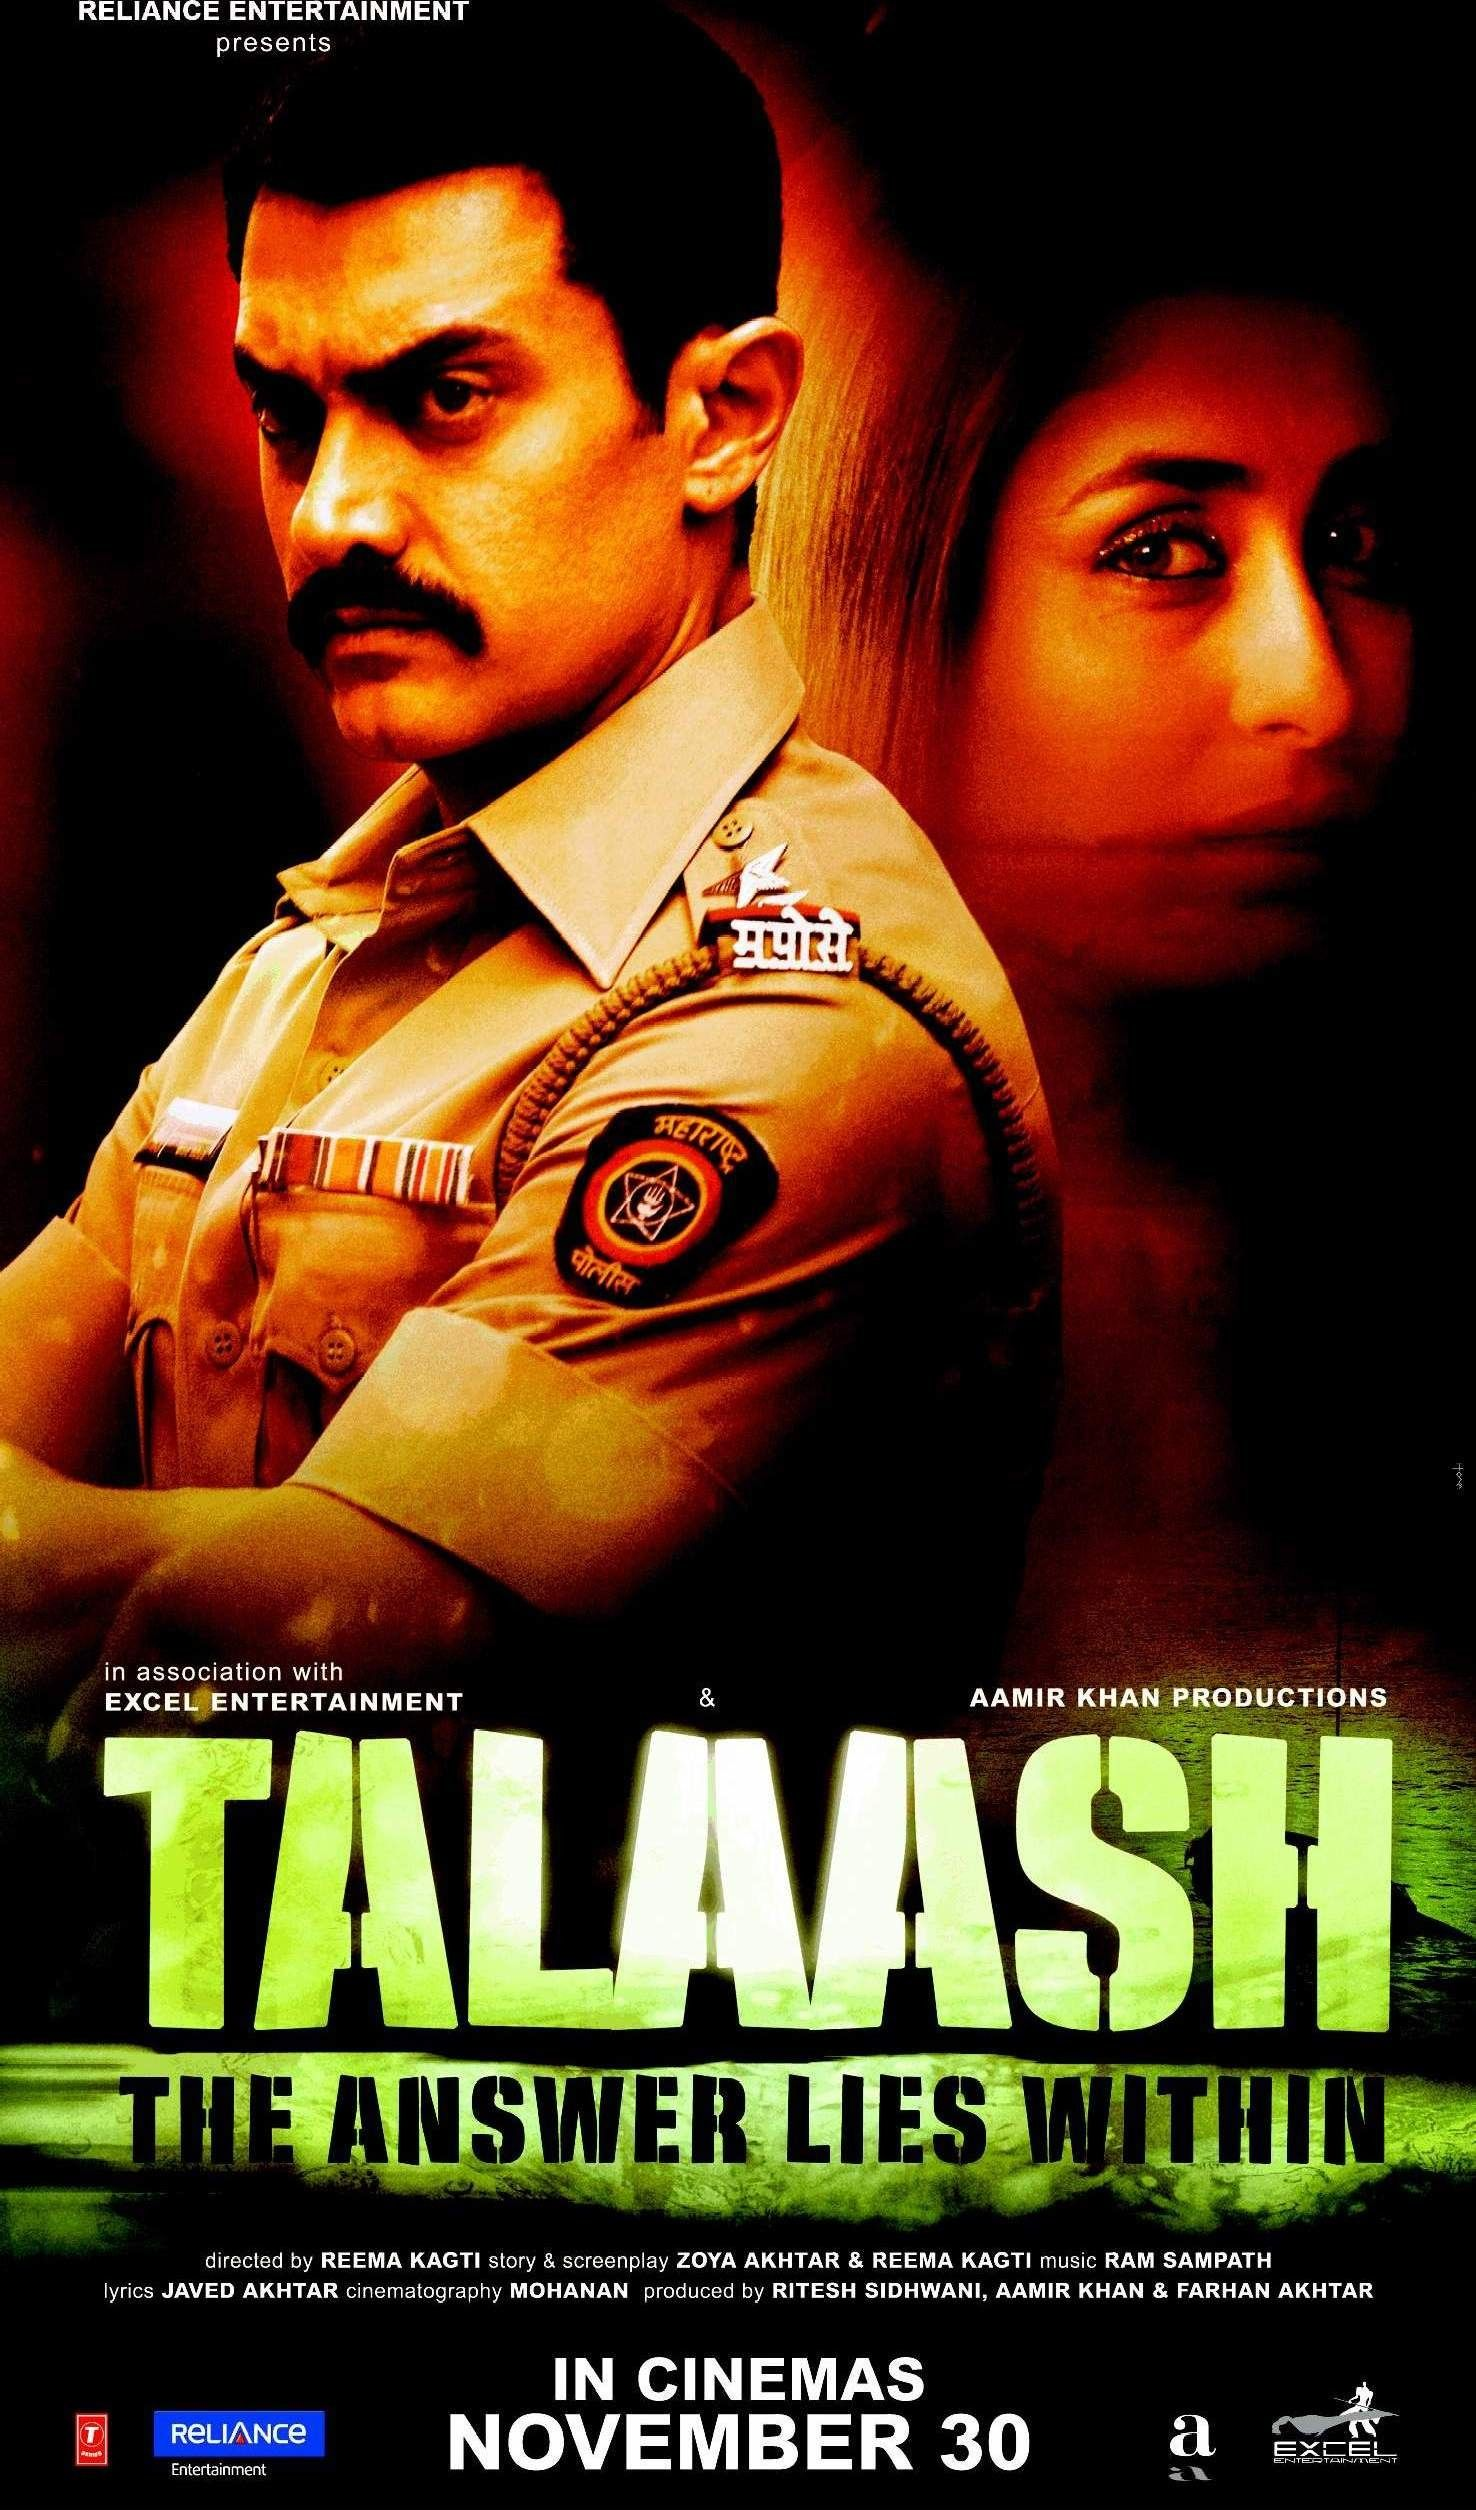 Talaash' poster feat. Aamir Khan and Kareena Kapoor (With images) | Aamir  khan, Bollywood posters, New movie posters